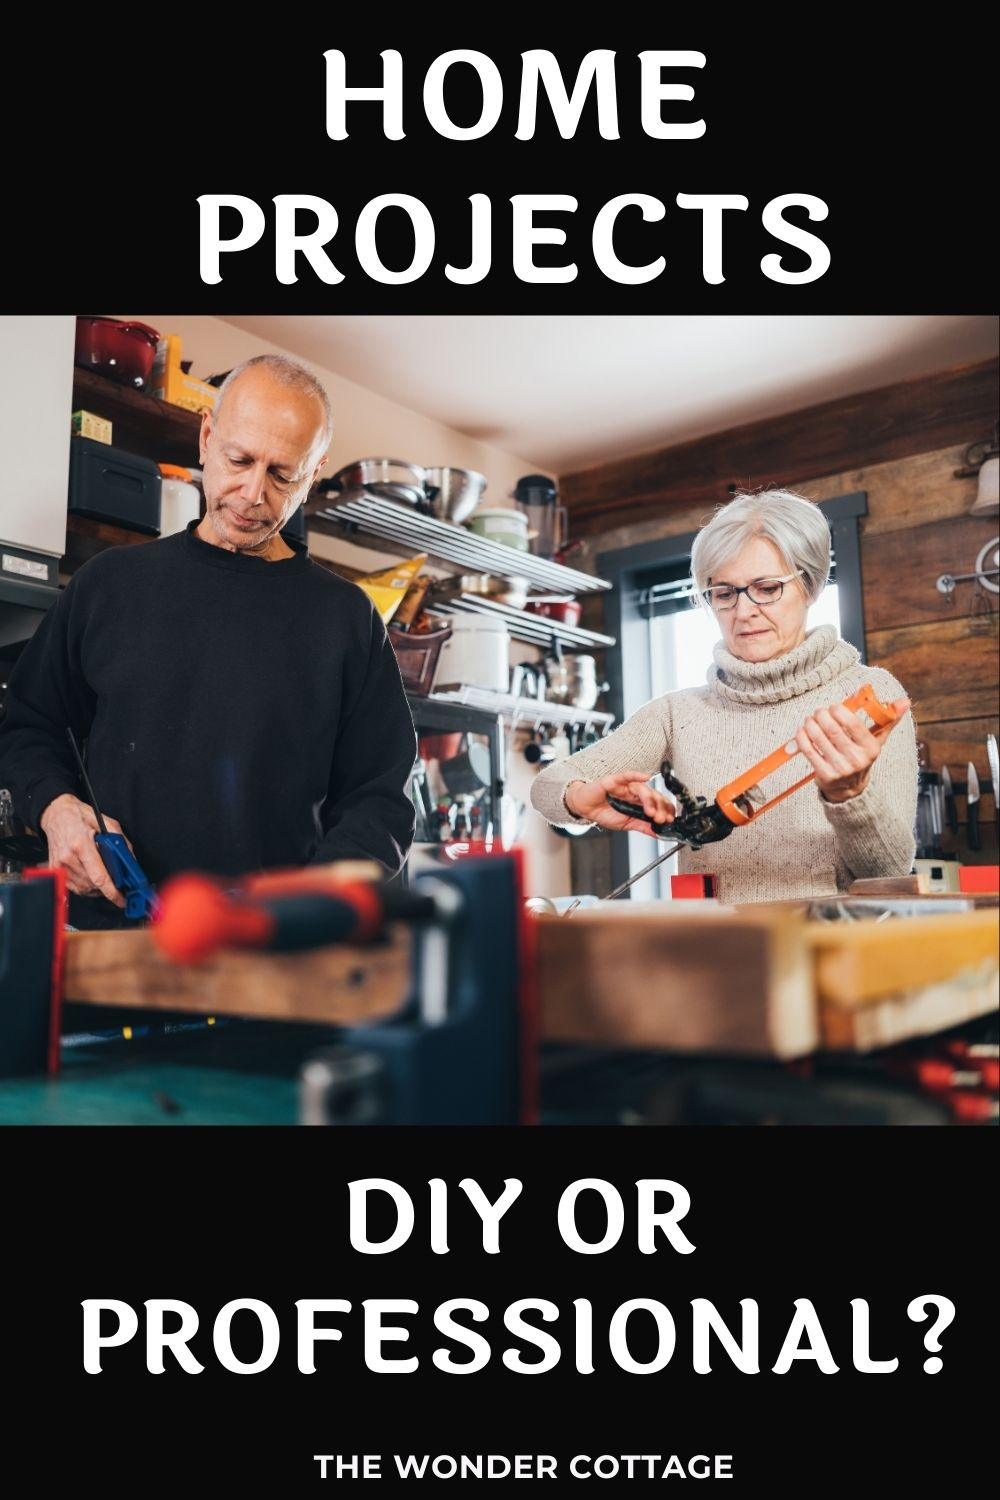 home projects - diy or professional?